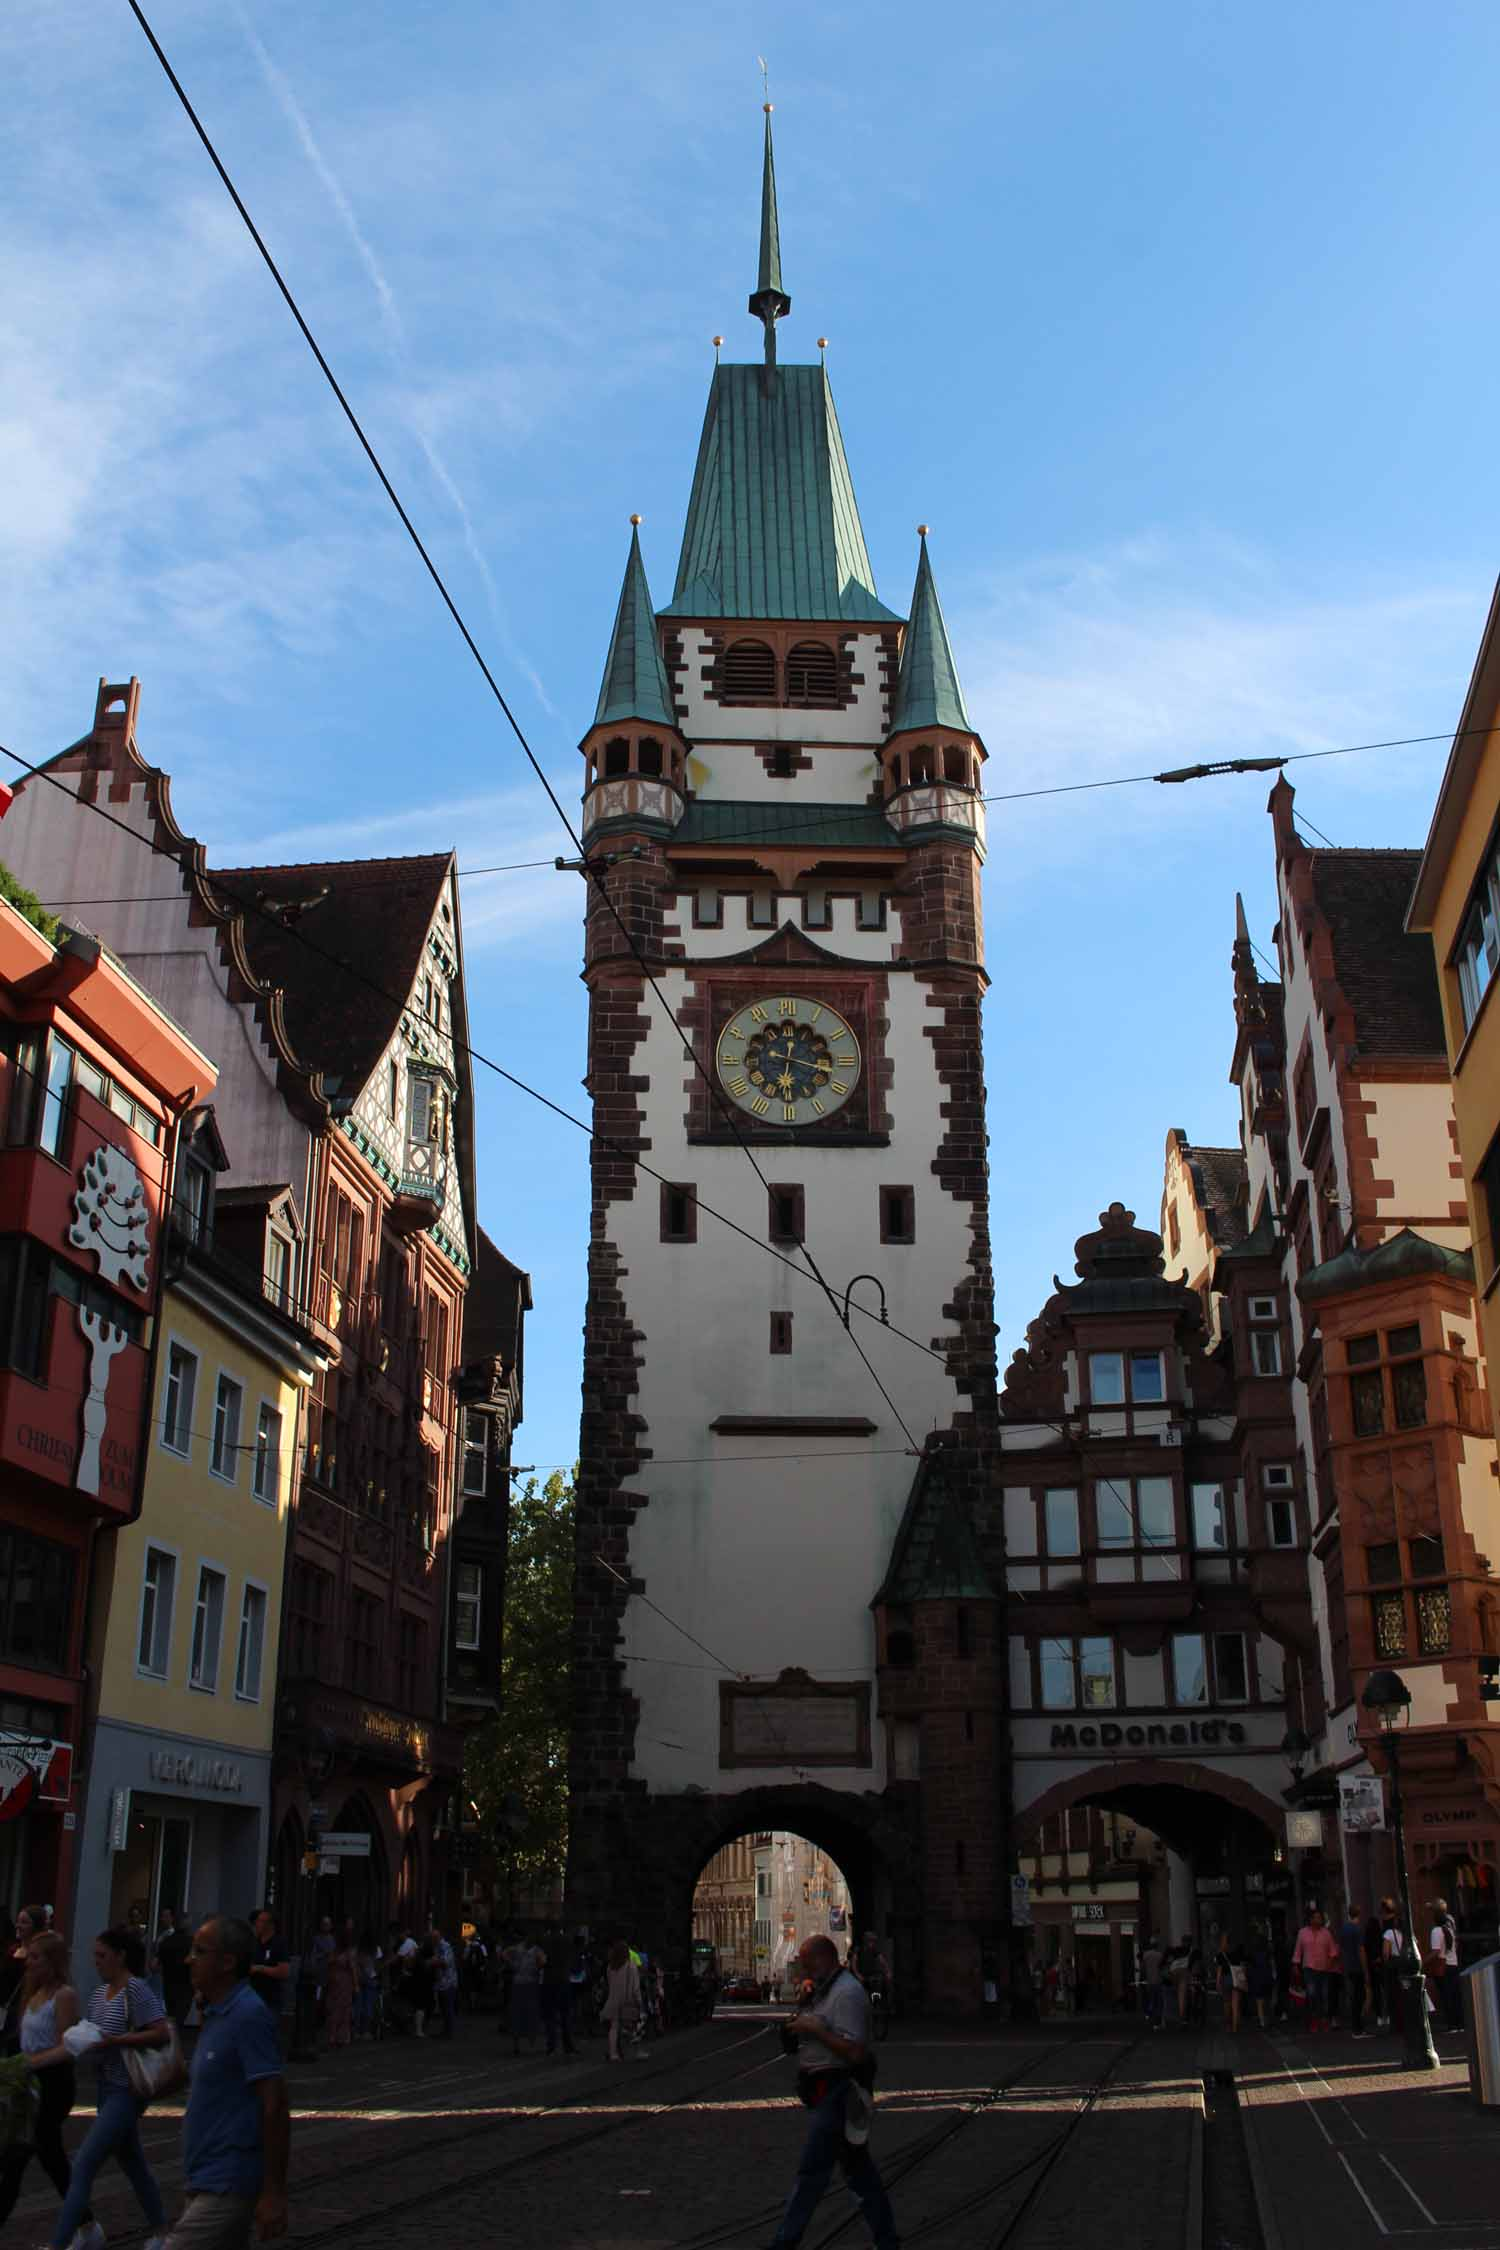 The Martinstor (St. Martin Tower) of Freiburg im Breisgau